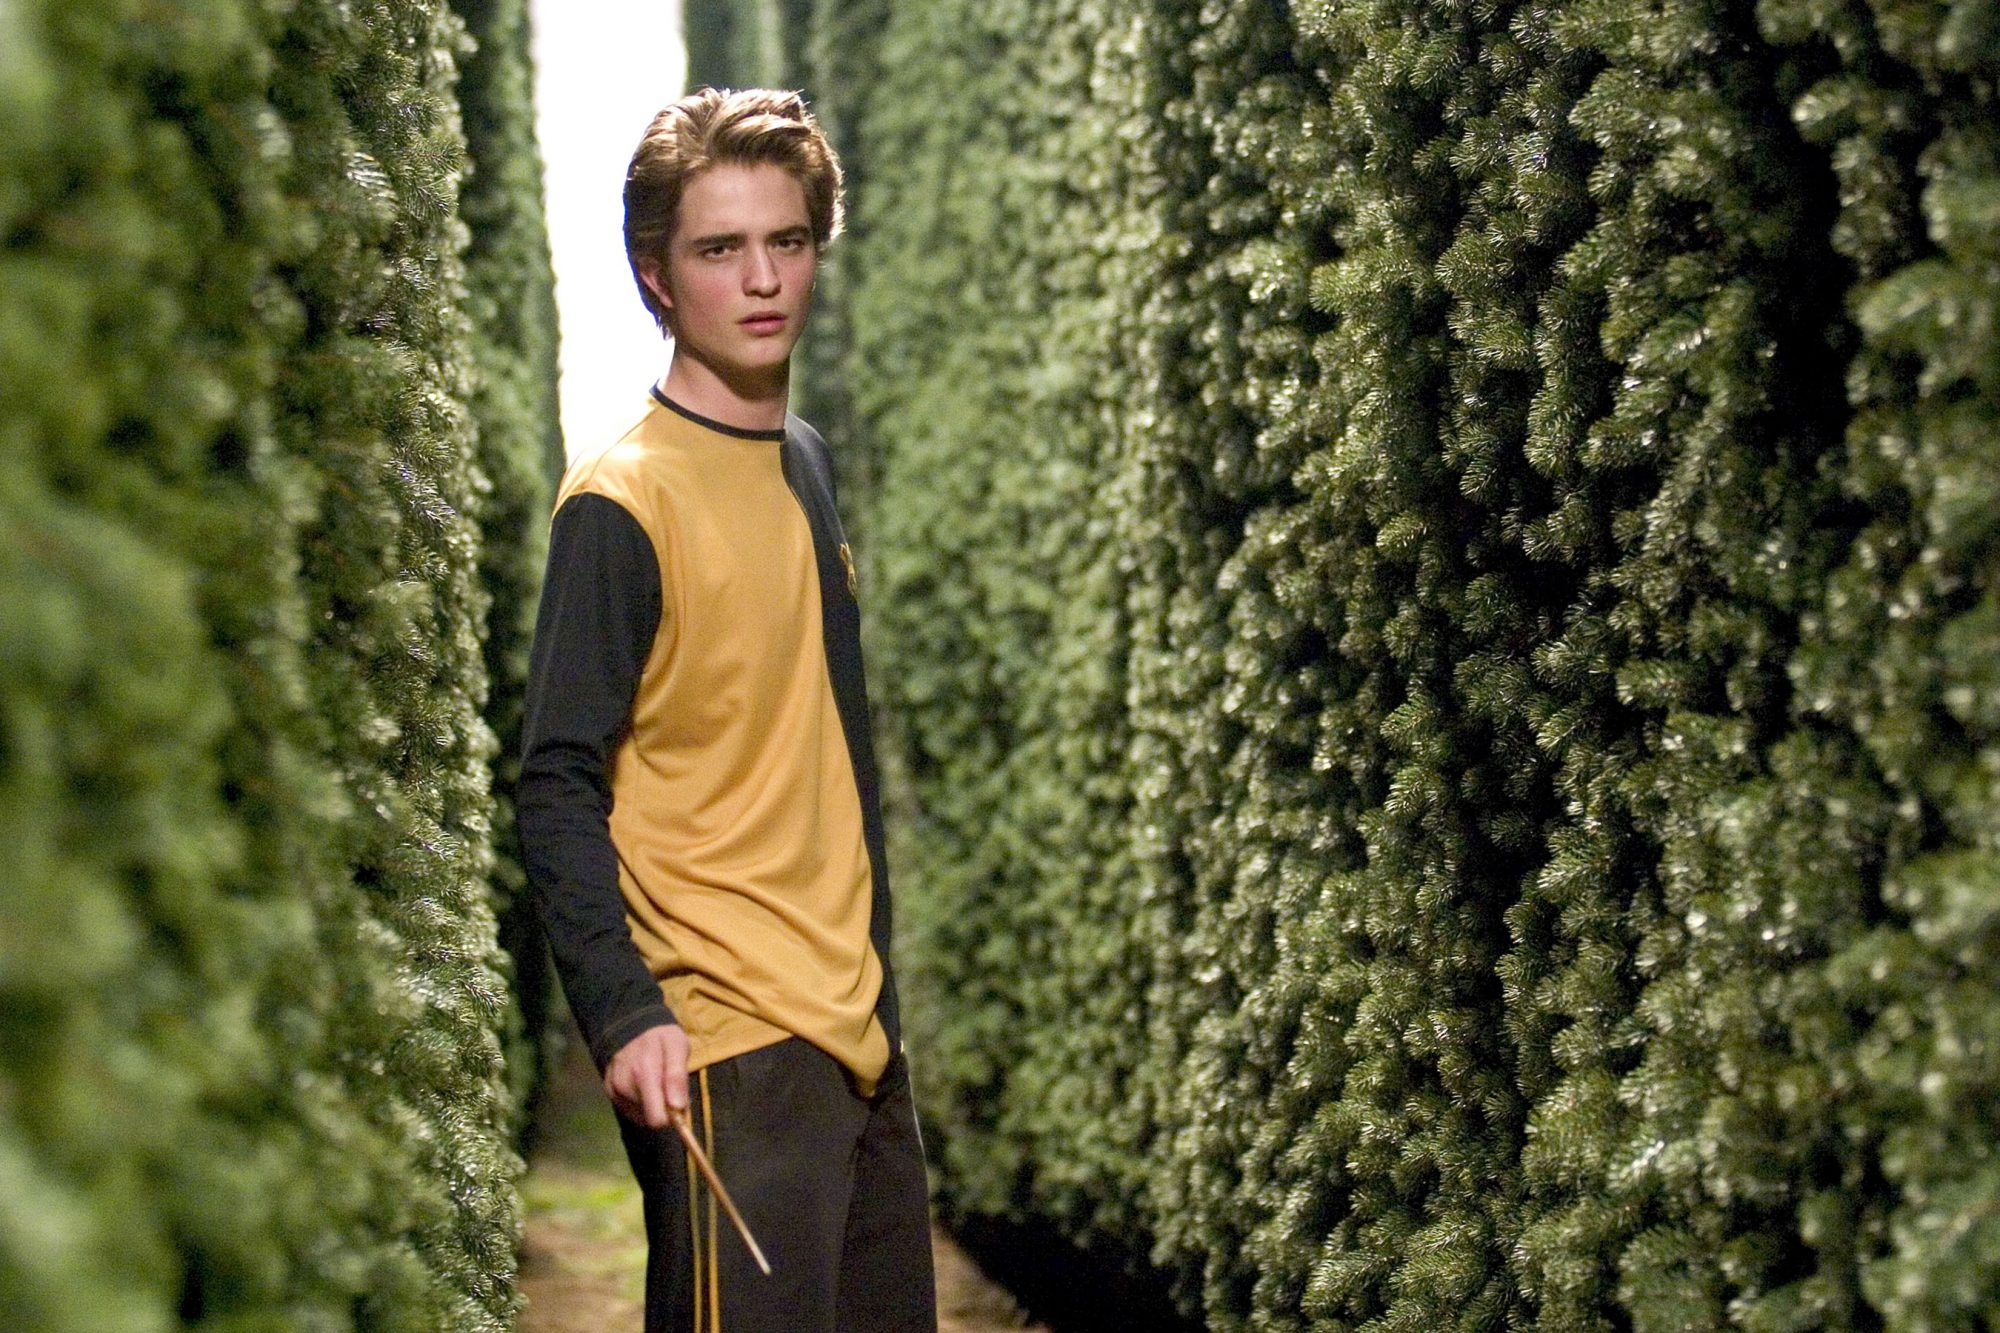 HARRY POTTER AND THE GOBLET OF FIRE, Robert Pattinson, 2005, (c) Warner Brothers/courtesy Everett Co